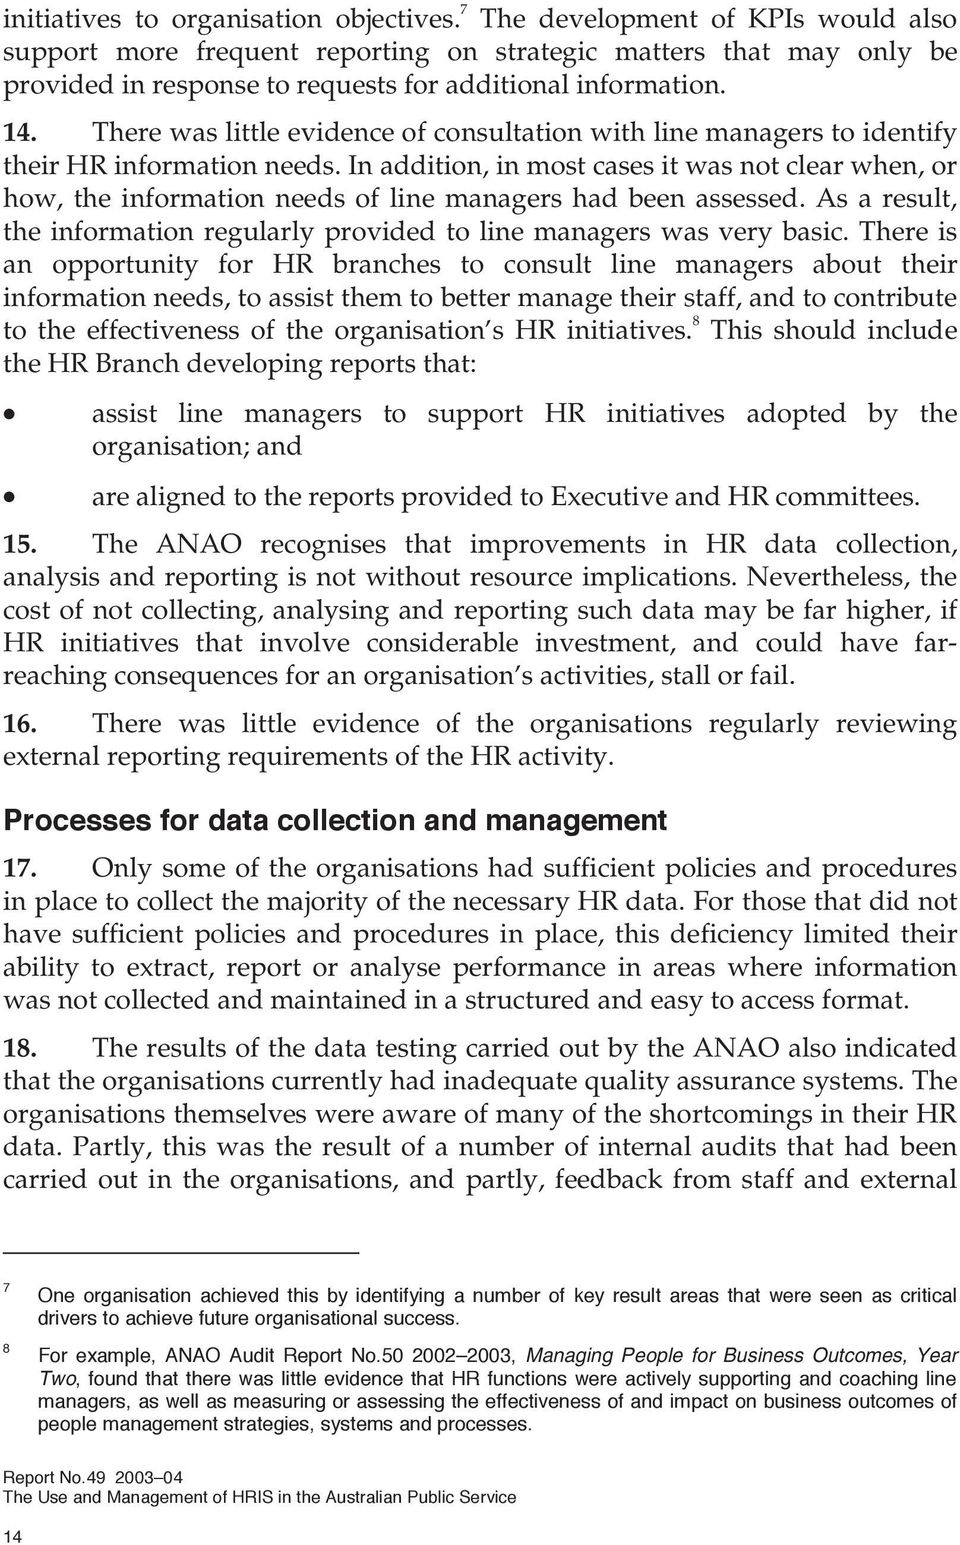 There was little evidence of consultation with line managers to identify their HR information needs.